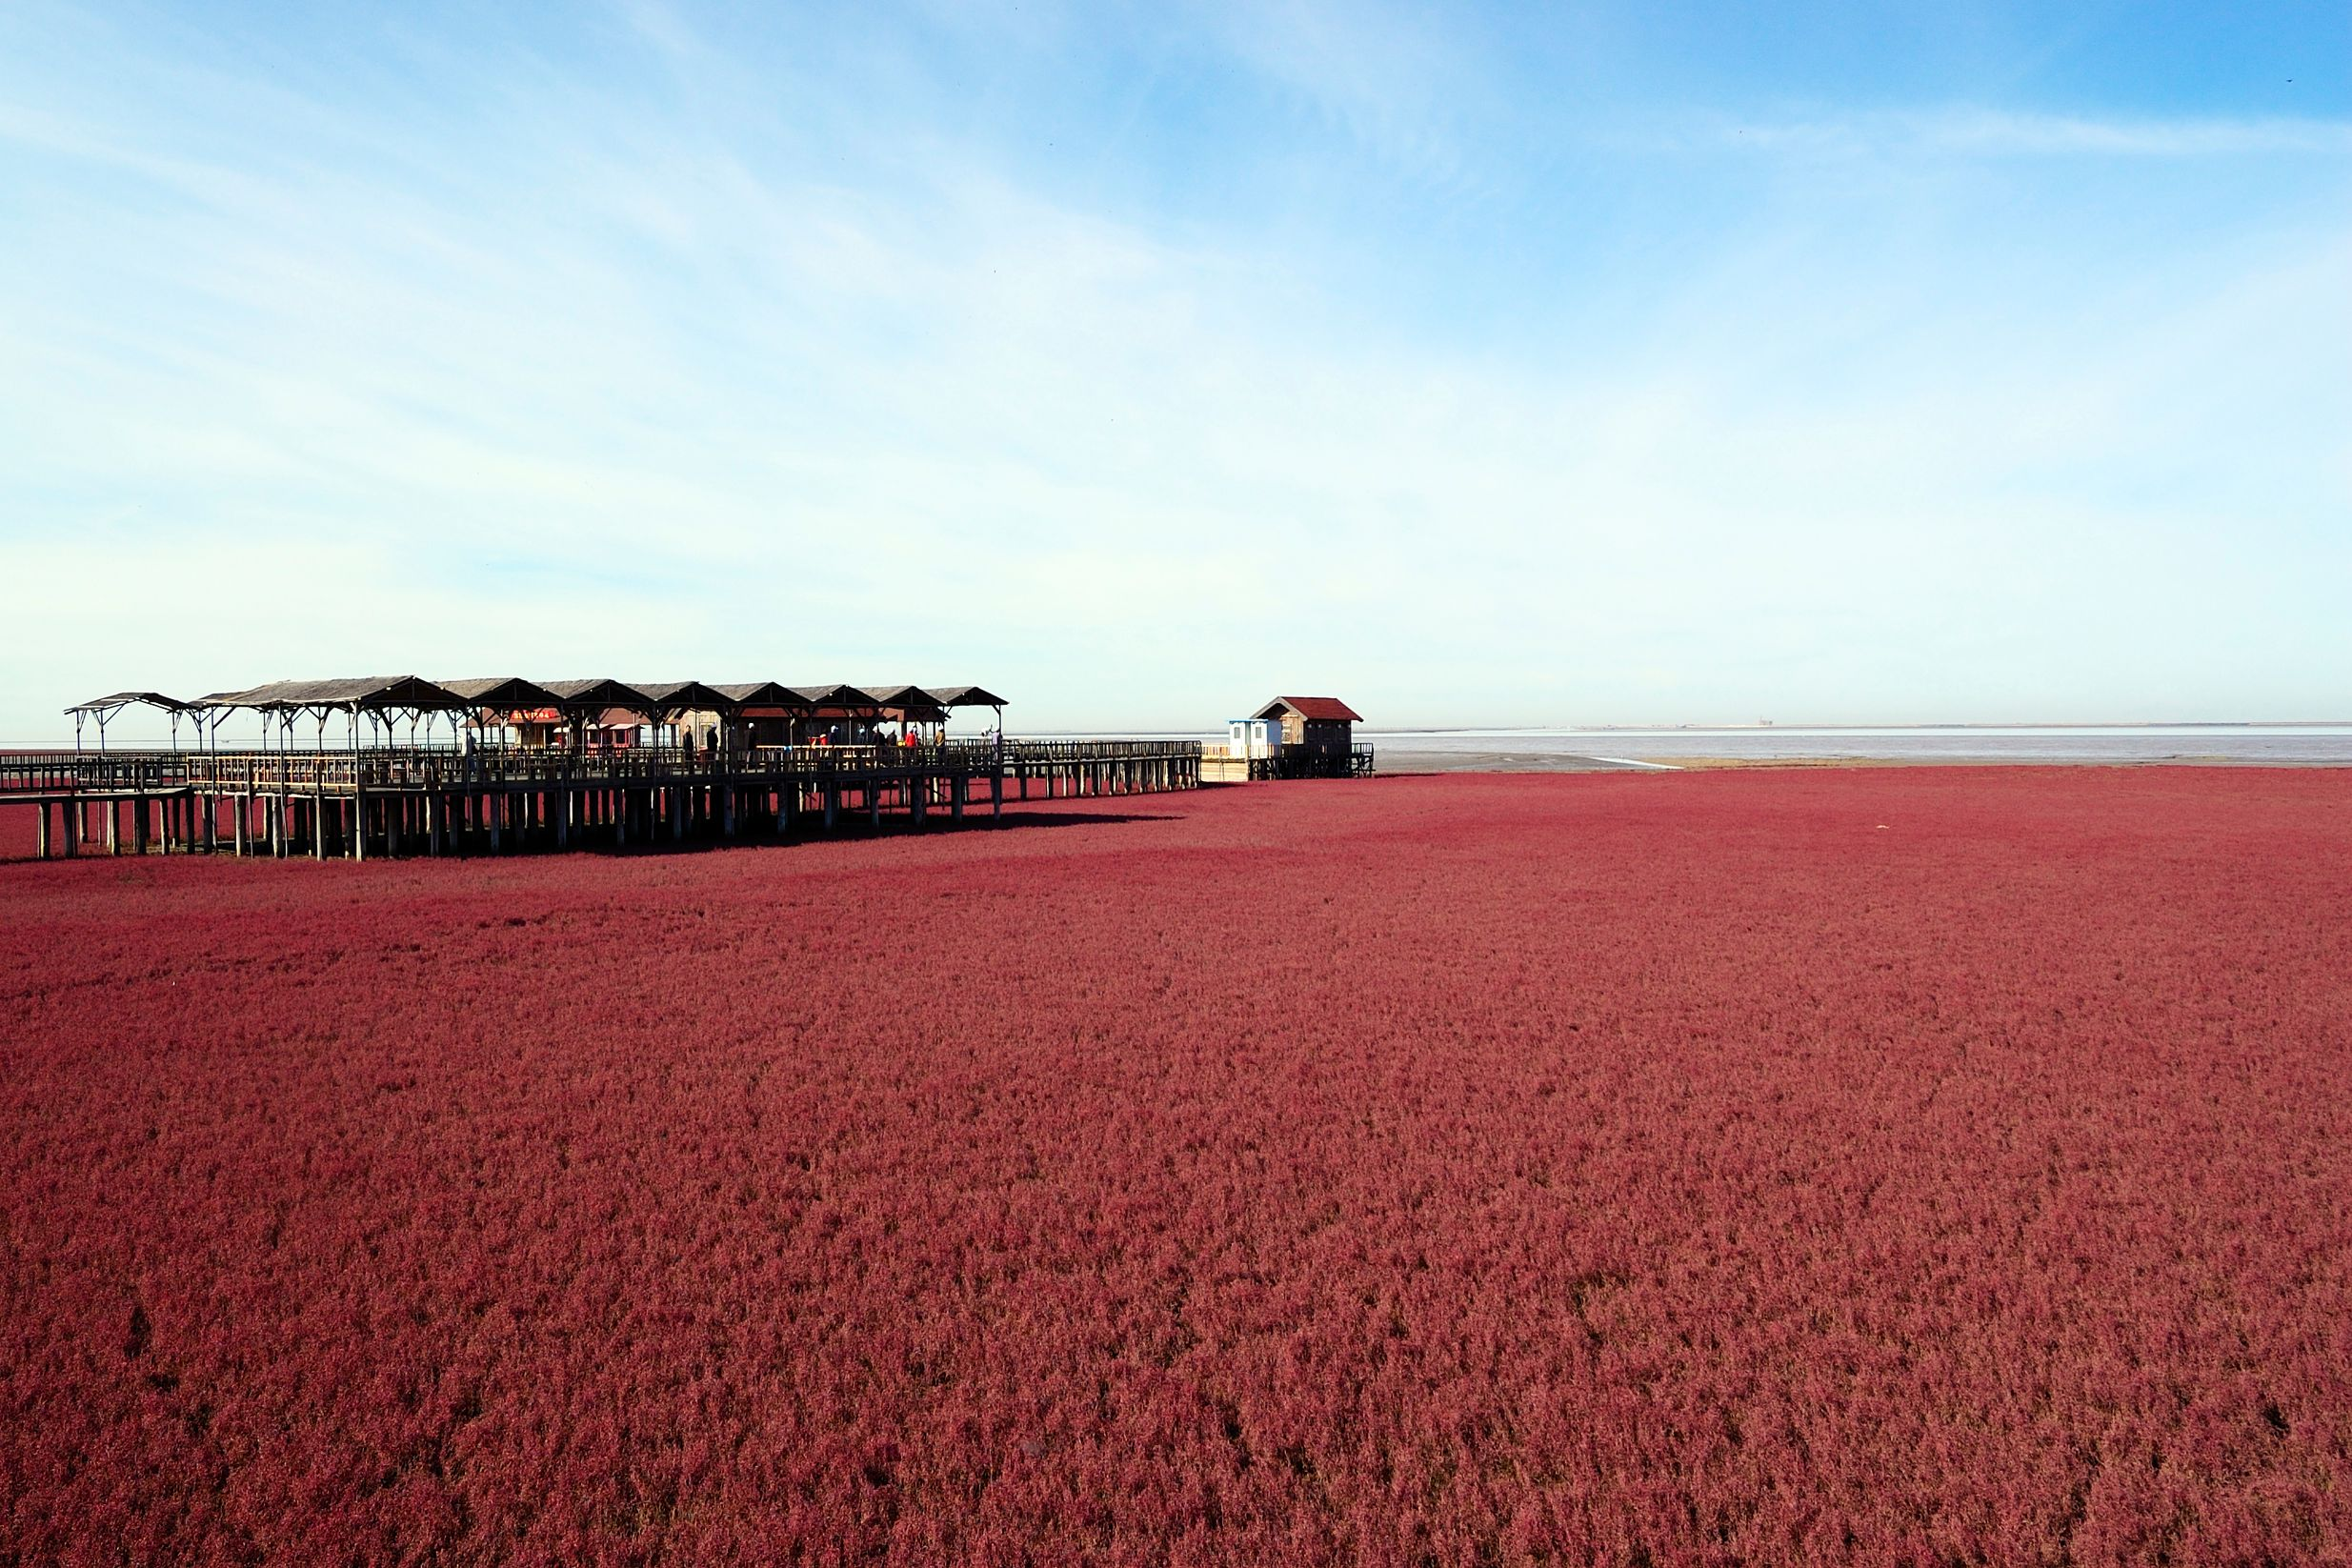 Red Beach, Panjin, China is one of the most colourful and magical places on the planet